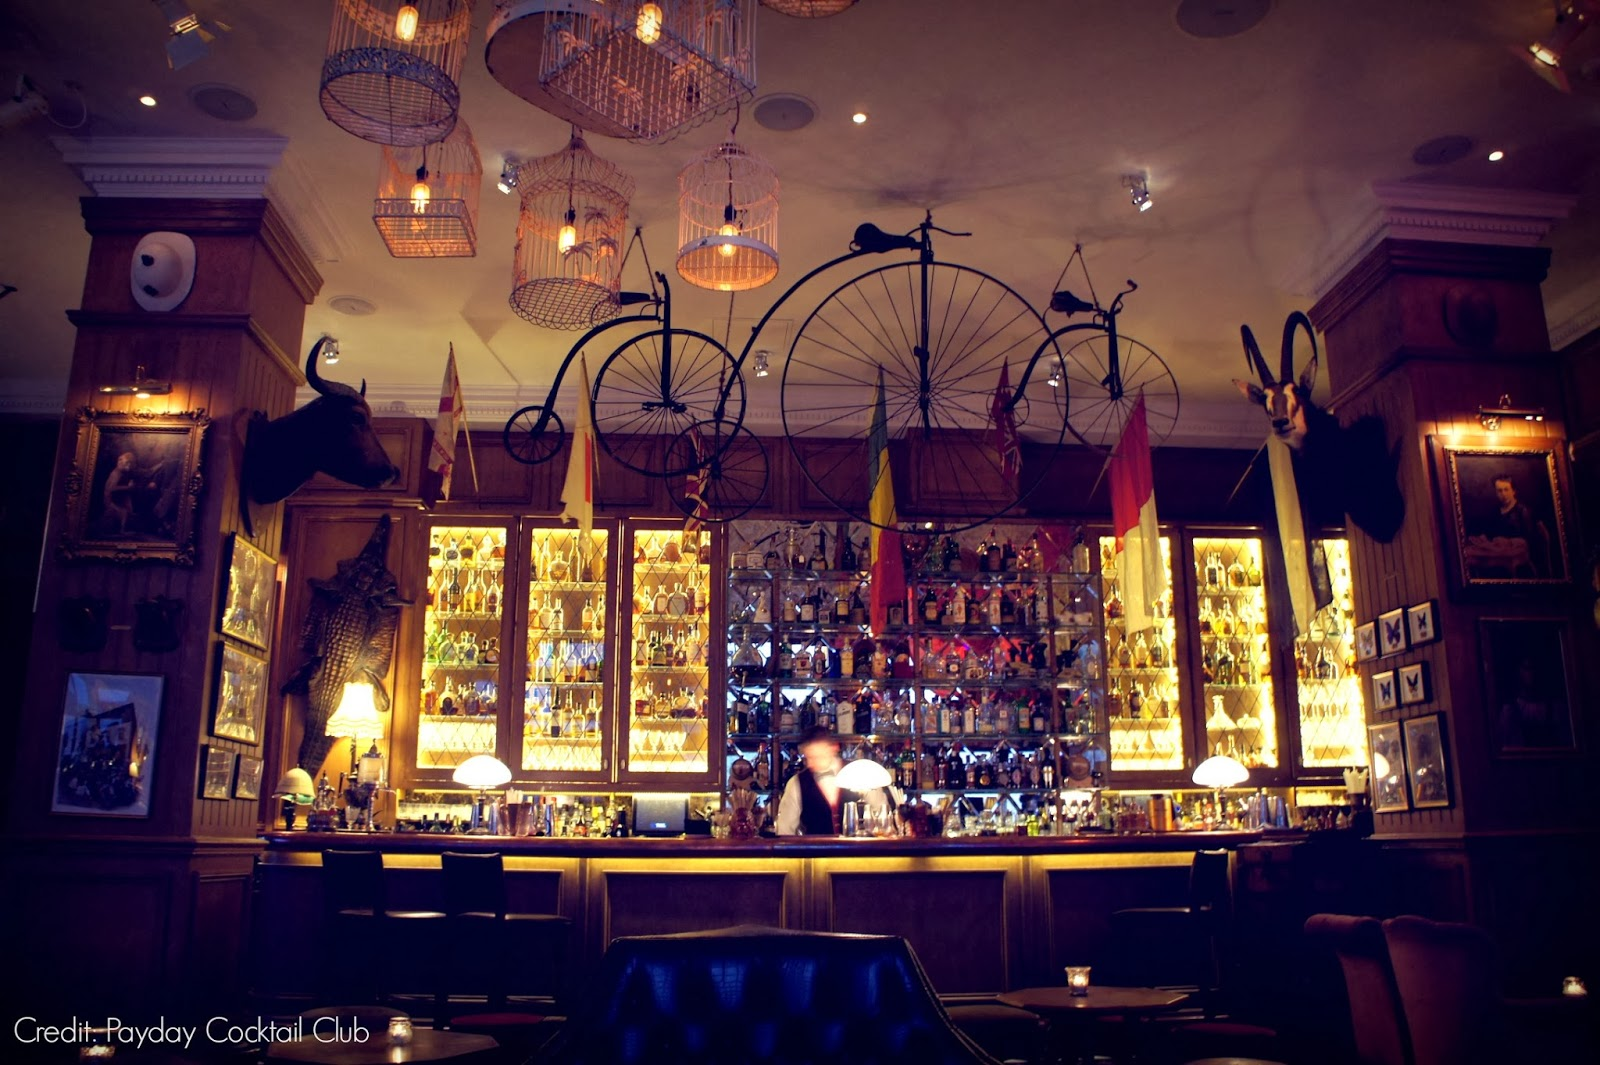 Mr Fogg's Cocktail Bar Review